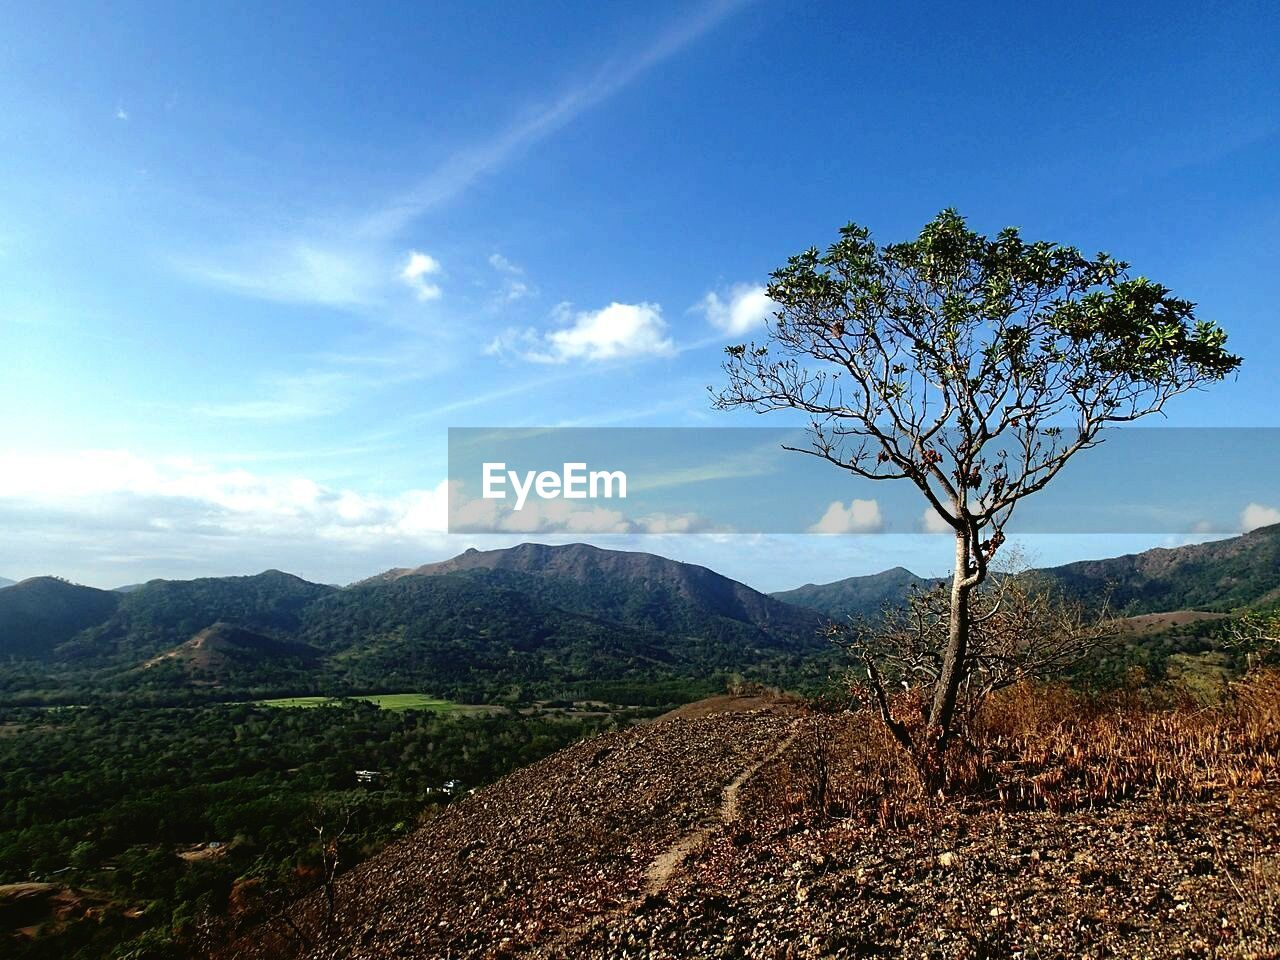 mountain, tree, landscape, sky, tranquility, nature, beauty in nature, tranquil scene, day, outdoors, no people, scenics, lone, branch